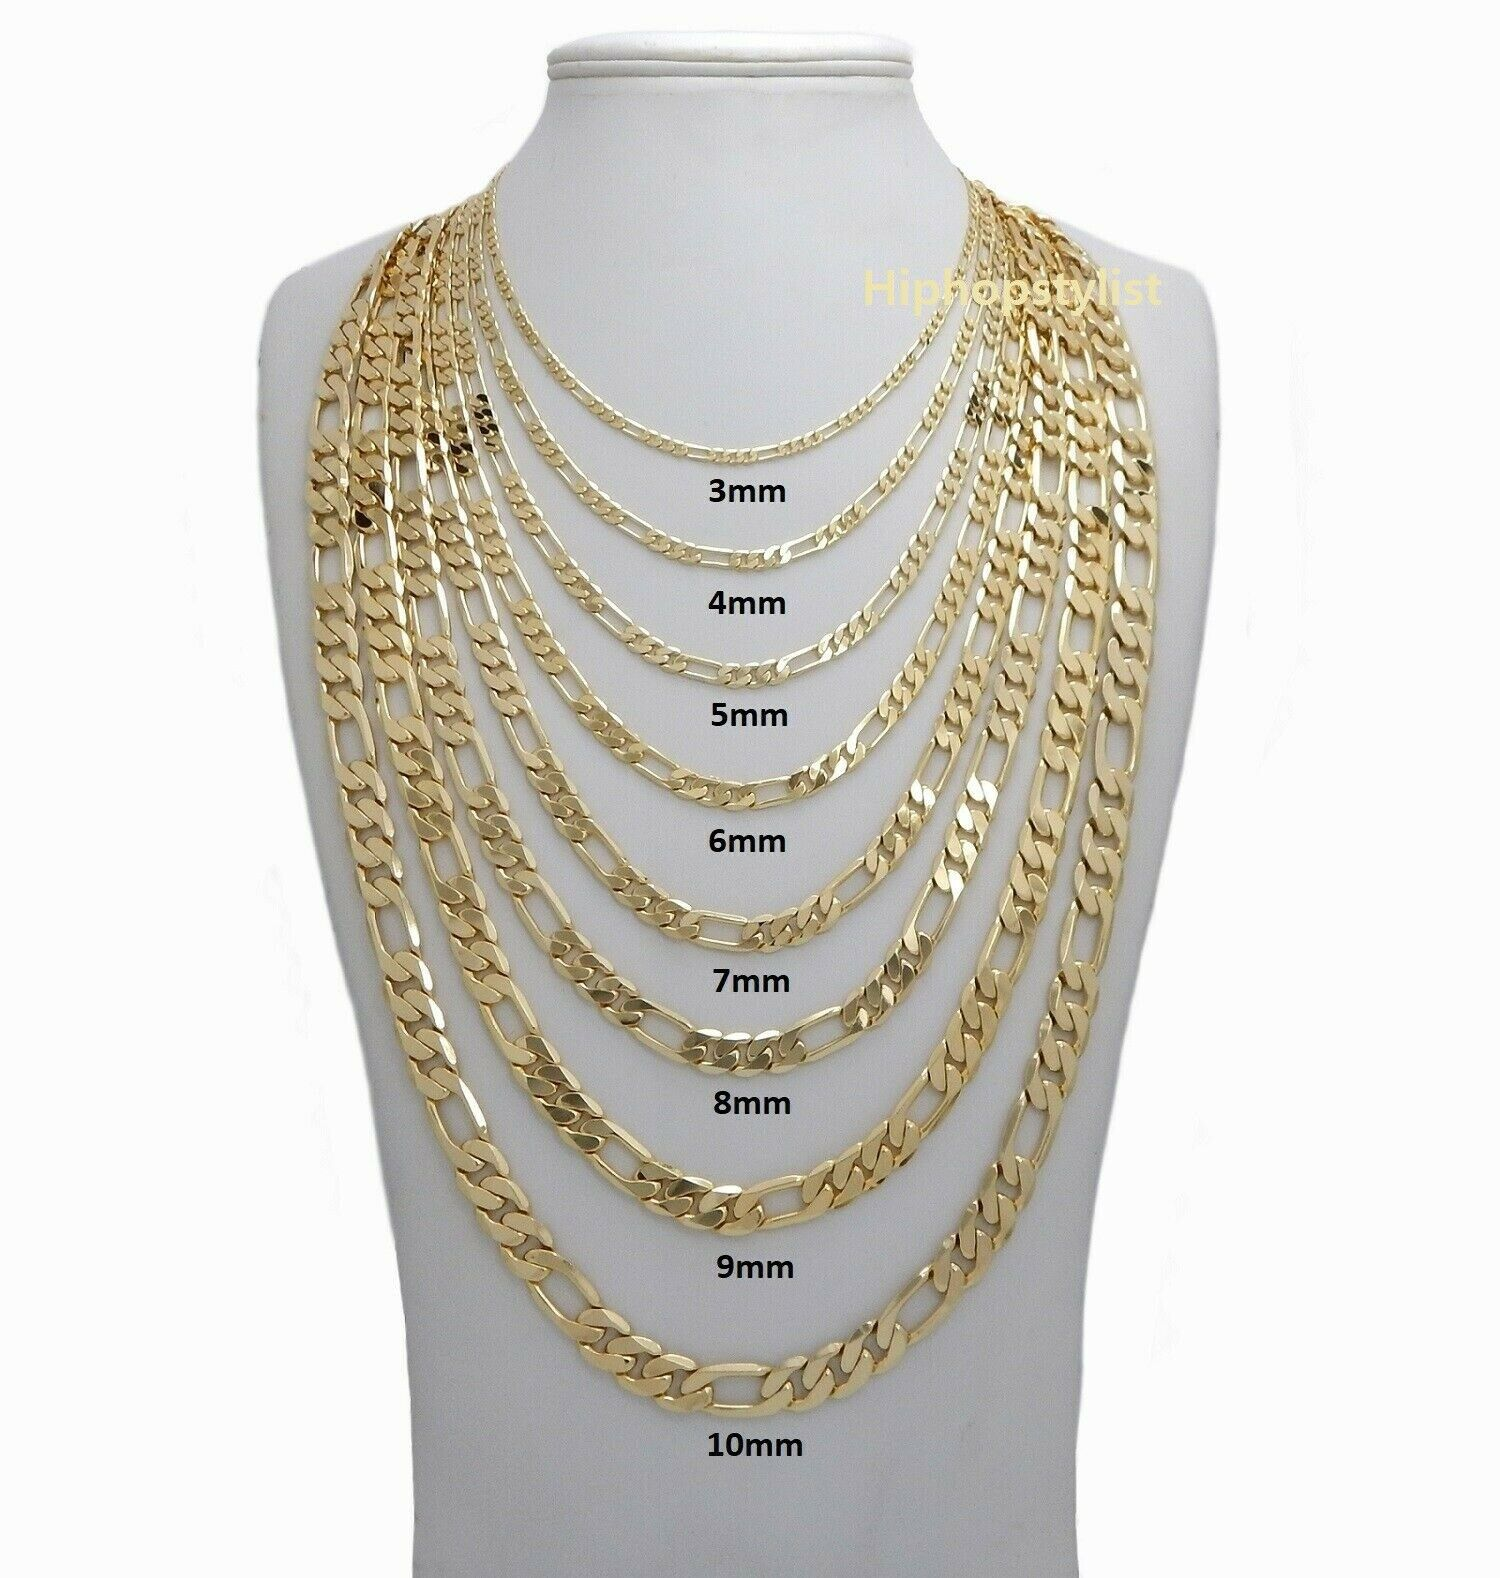 Jewellery - 14k Italian Figaro Link Chain Necklace 3mm to 10mm Gold Plated